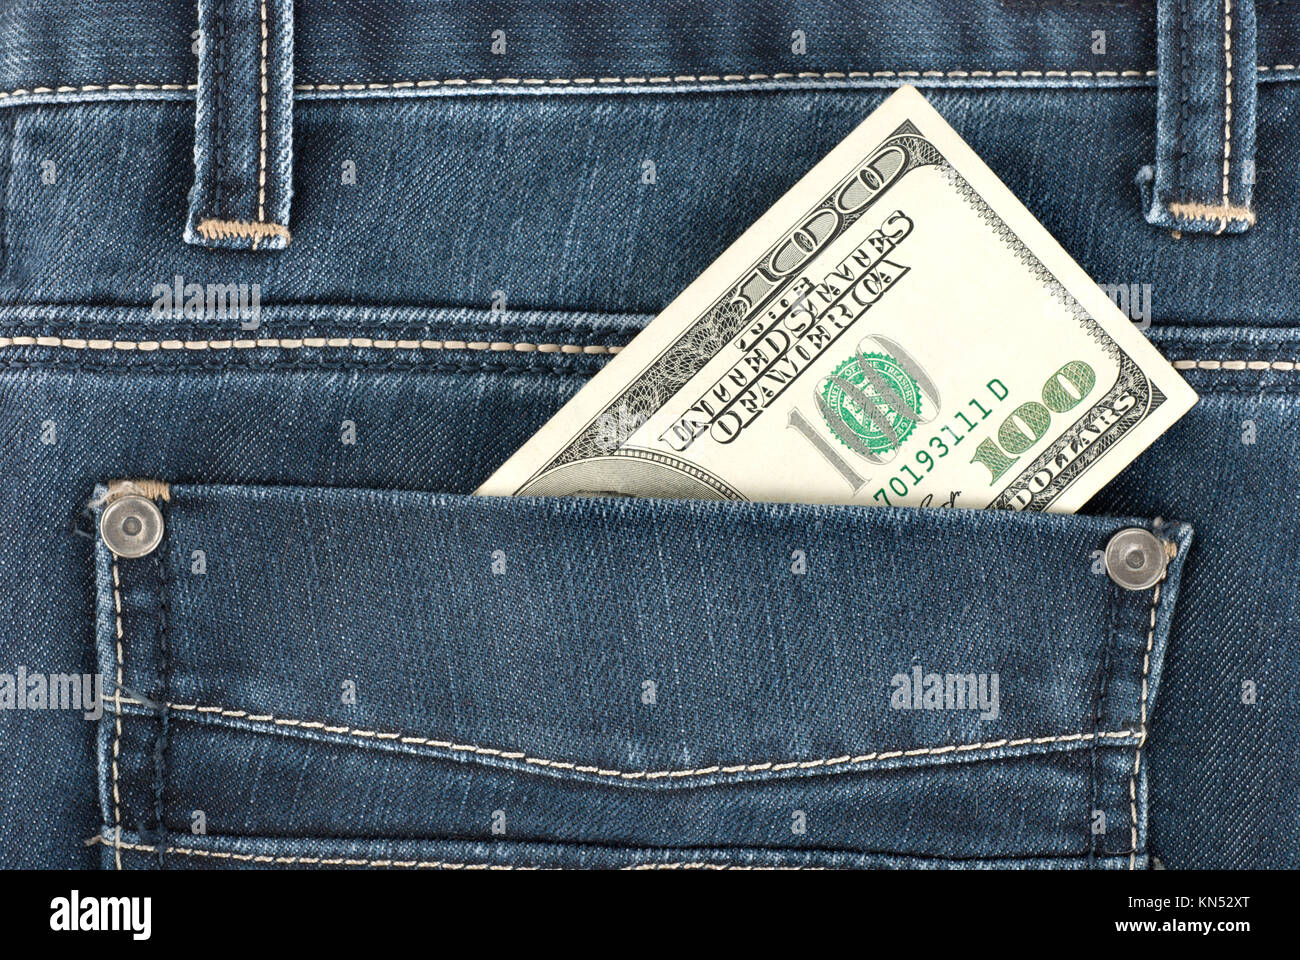 A one hundred dollar note in the back pocket of denim trousers. - Stock Image